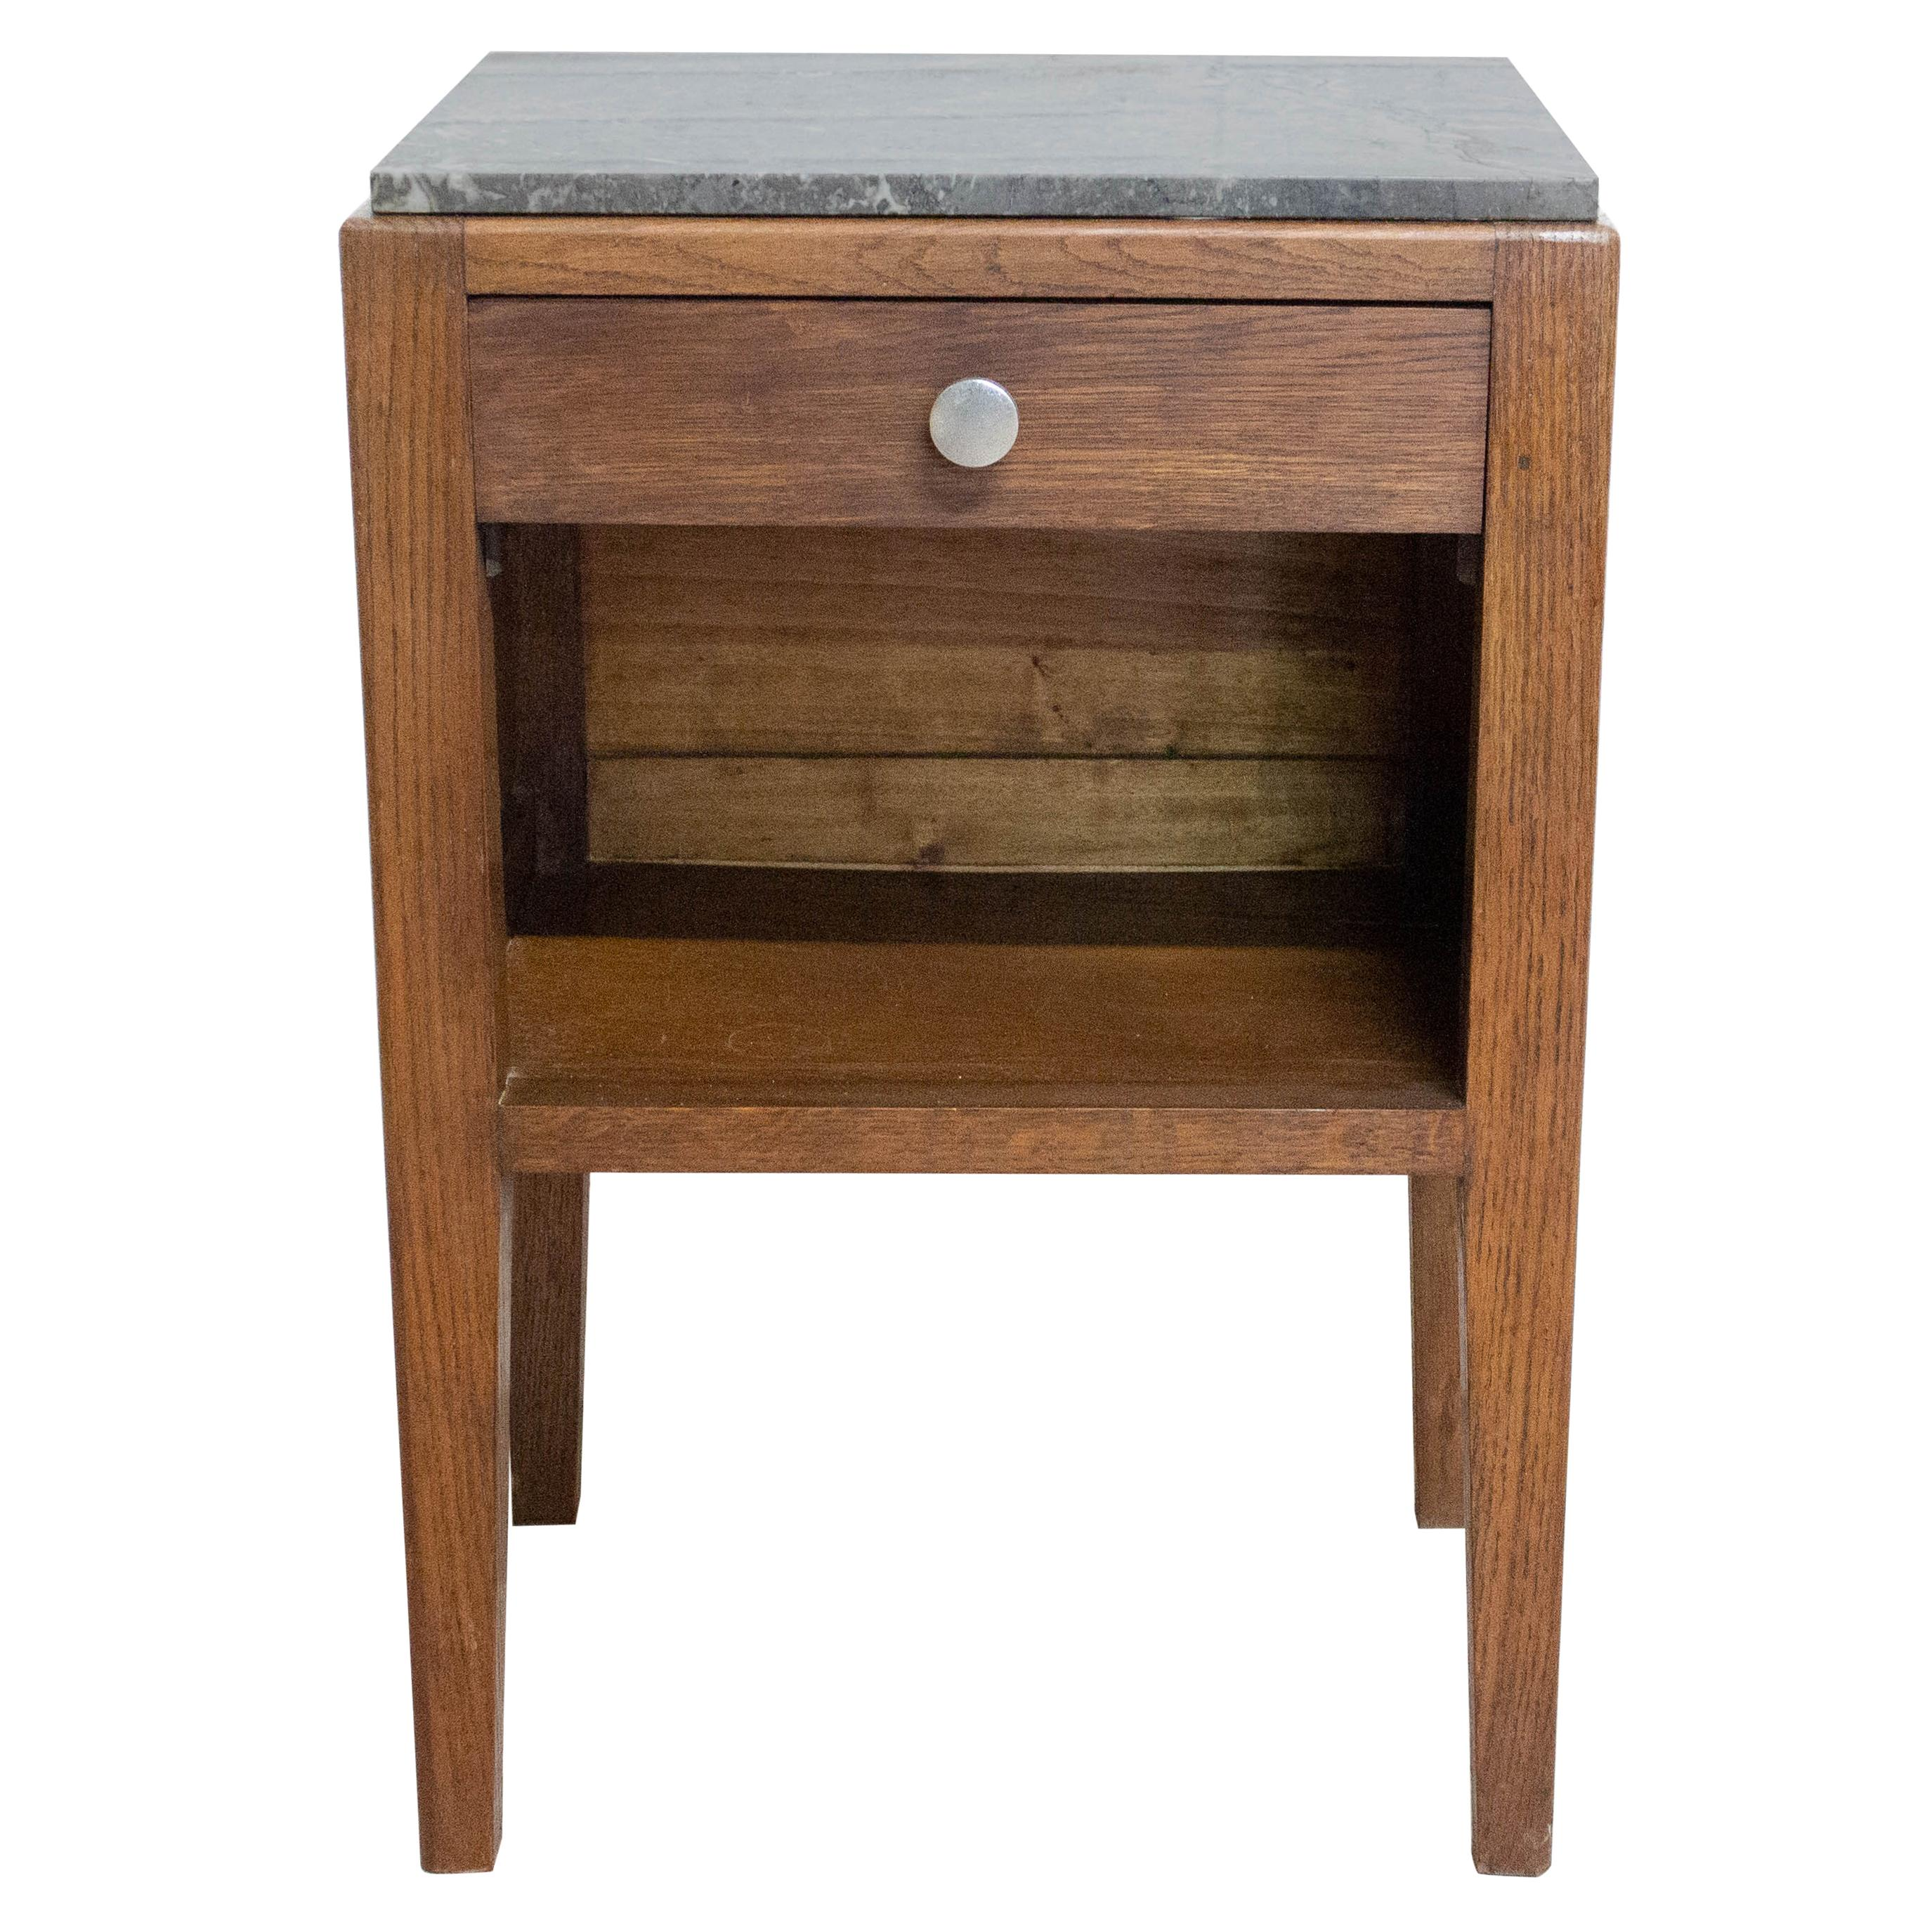 Midcentury Side Cabinet Nightstand French Bedside Table Grey Marble Top